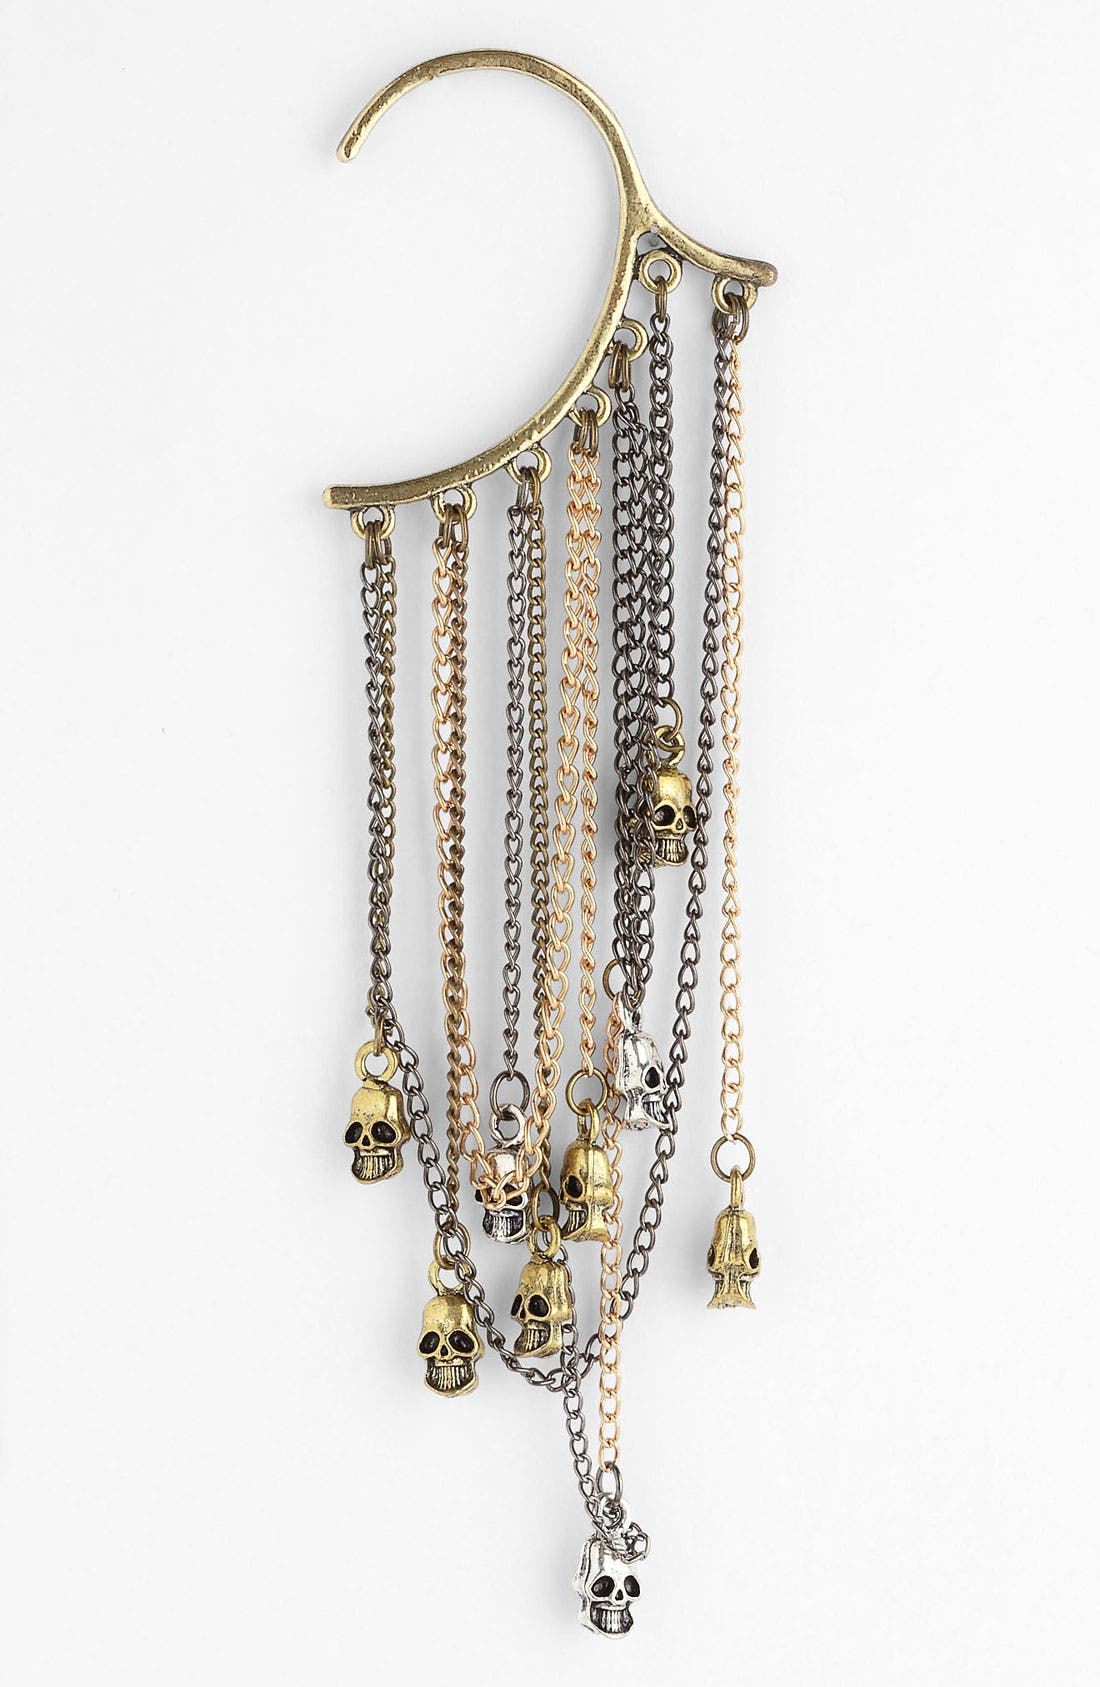 Main Image - By Samii Ryan 'Believe in Magic' Ear Cuff (Nordstrom Exclusive)